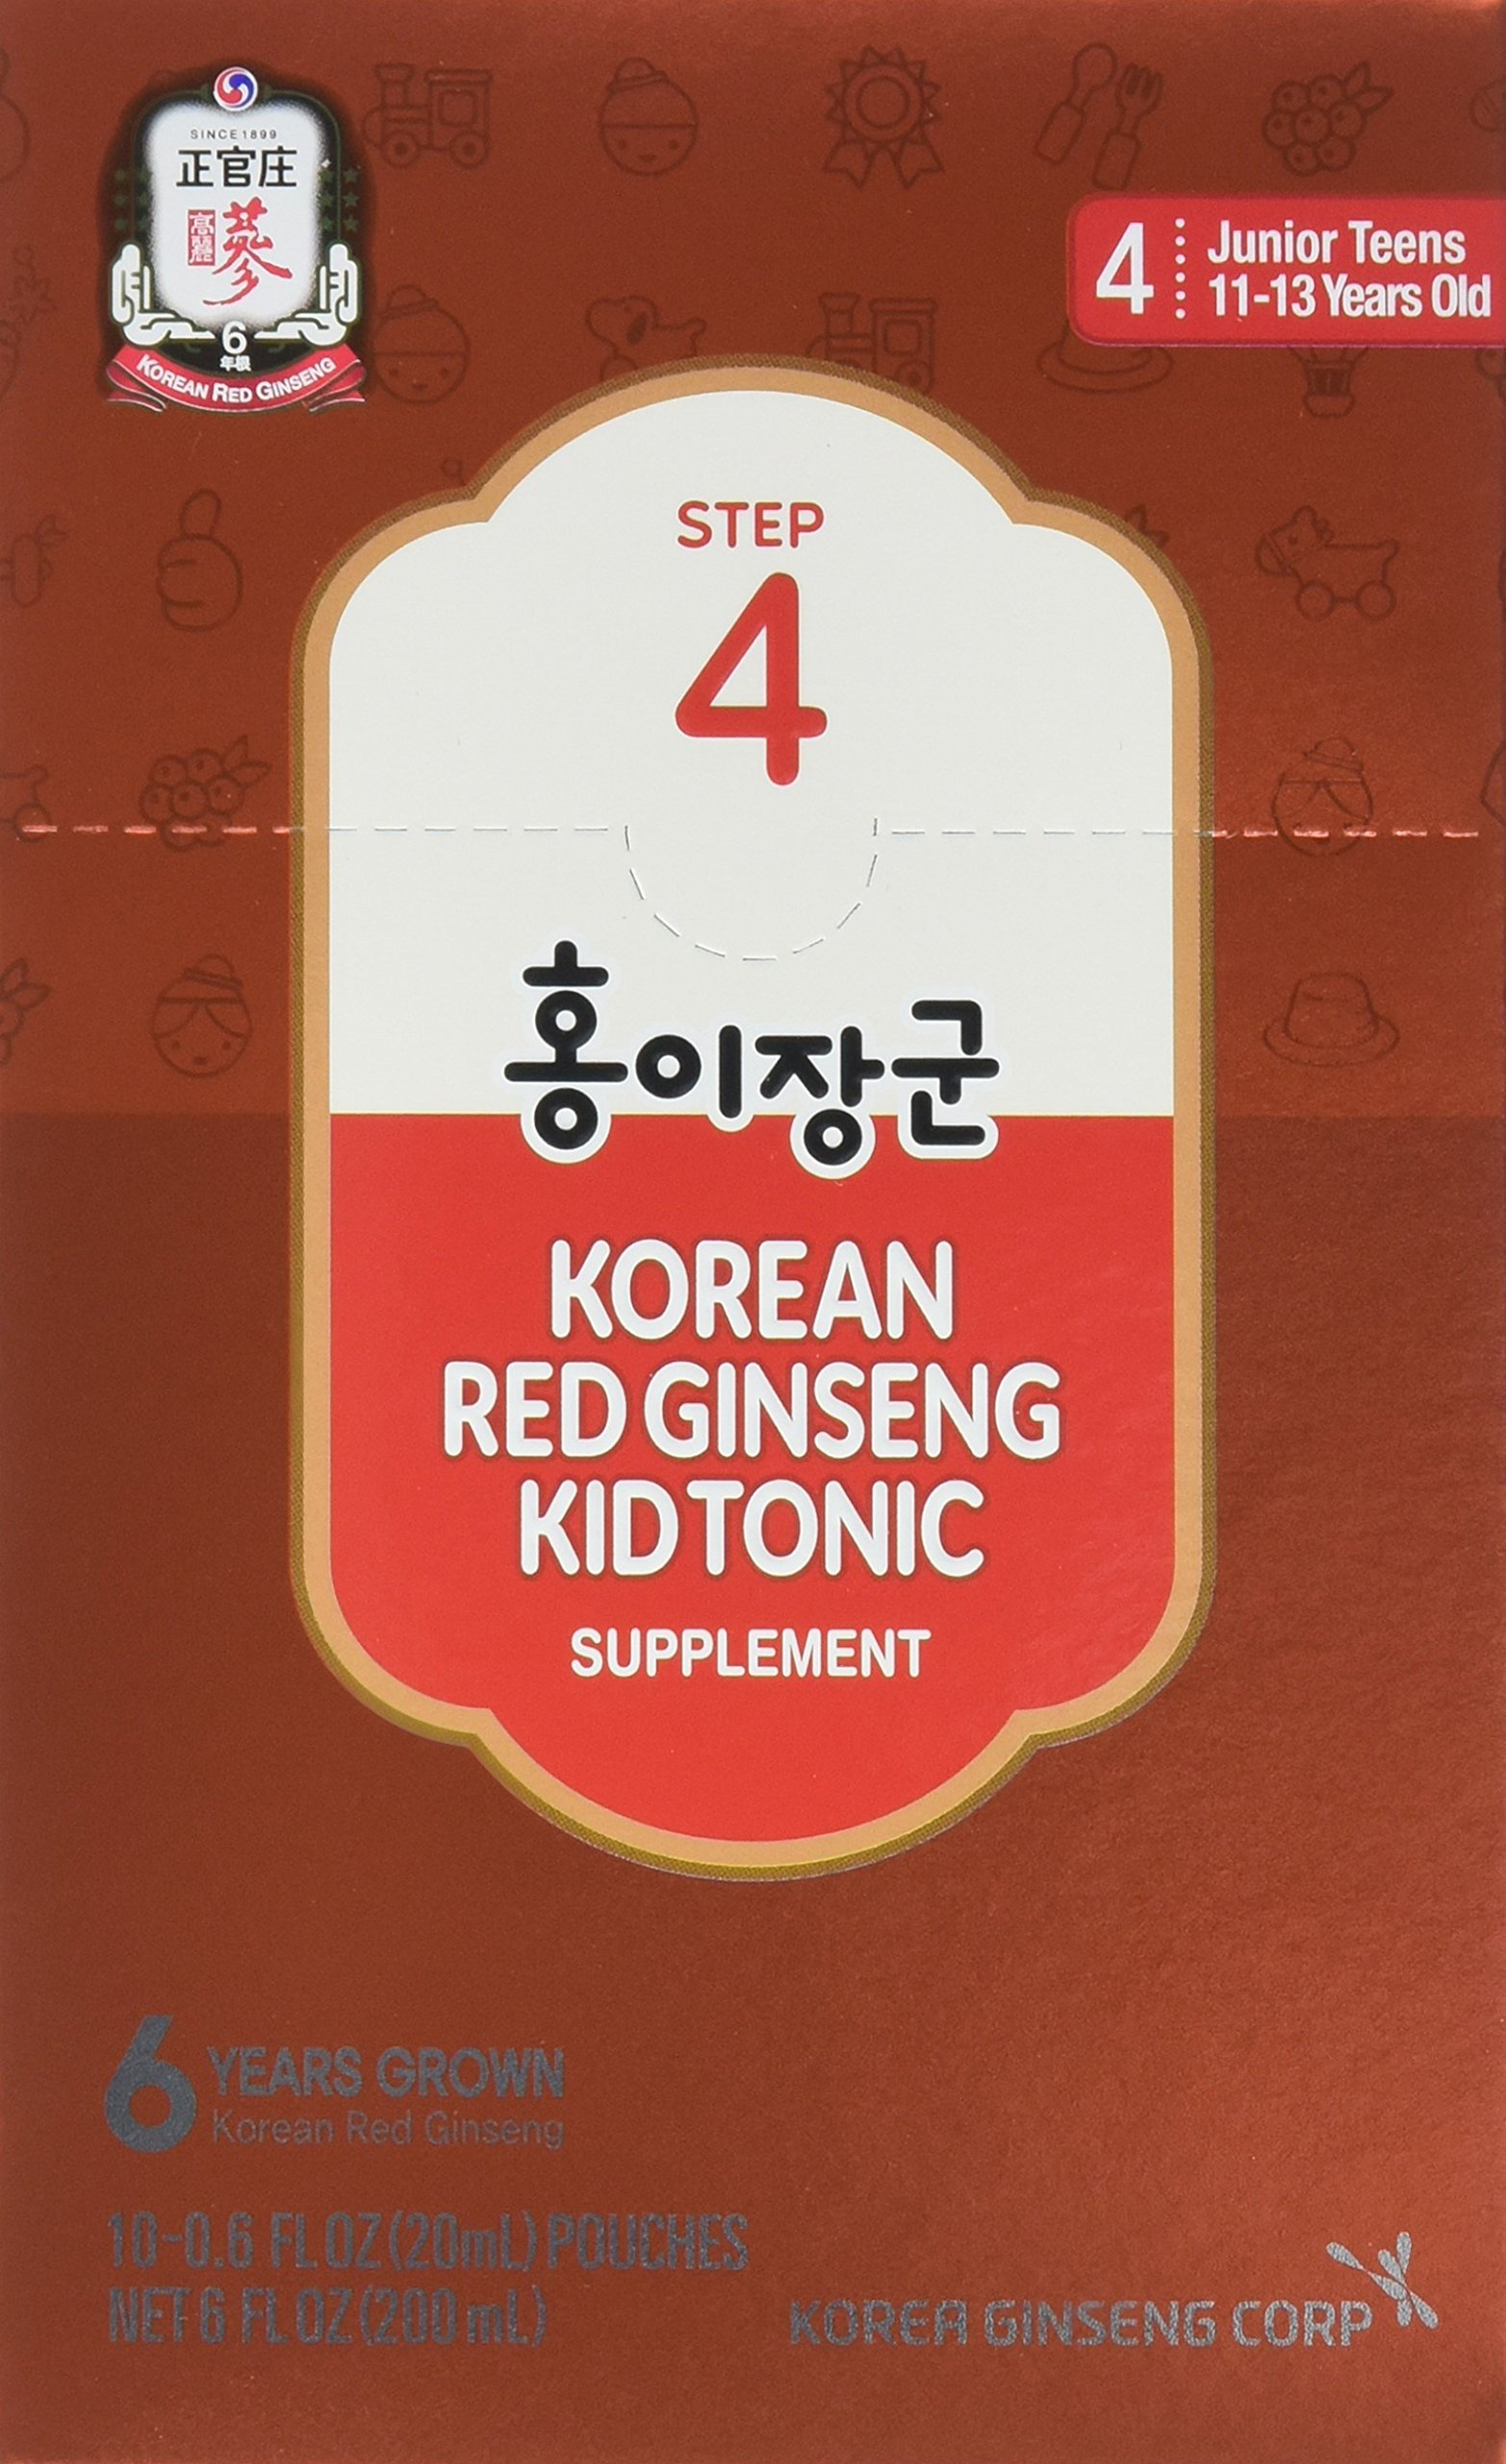 KGC Ginseng Step, 4 Kid Tonic, 11-14 Years, 30 Count